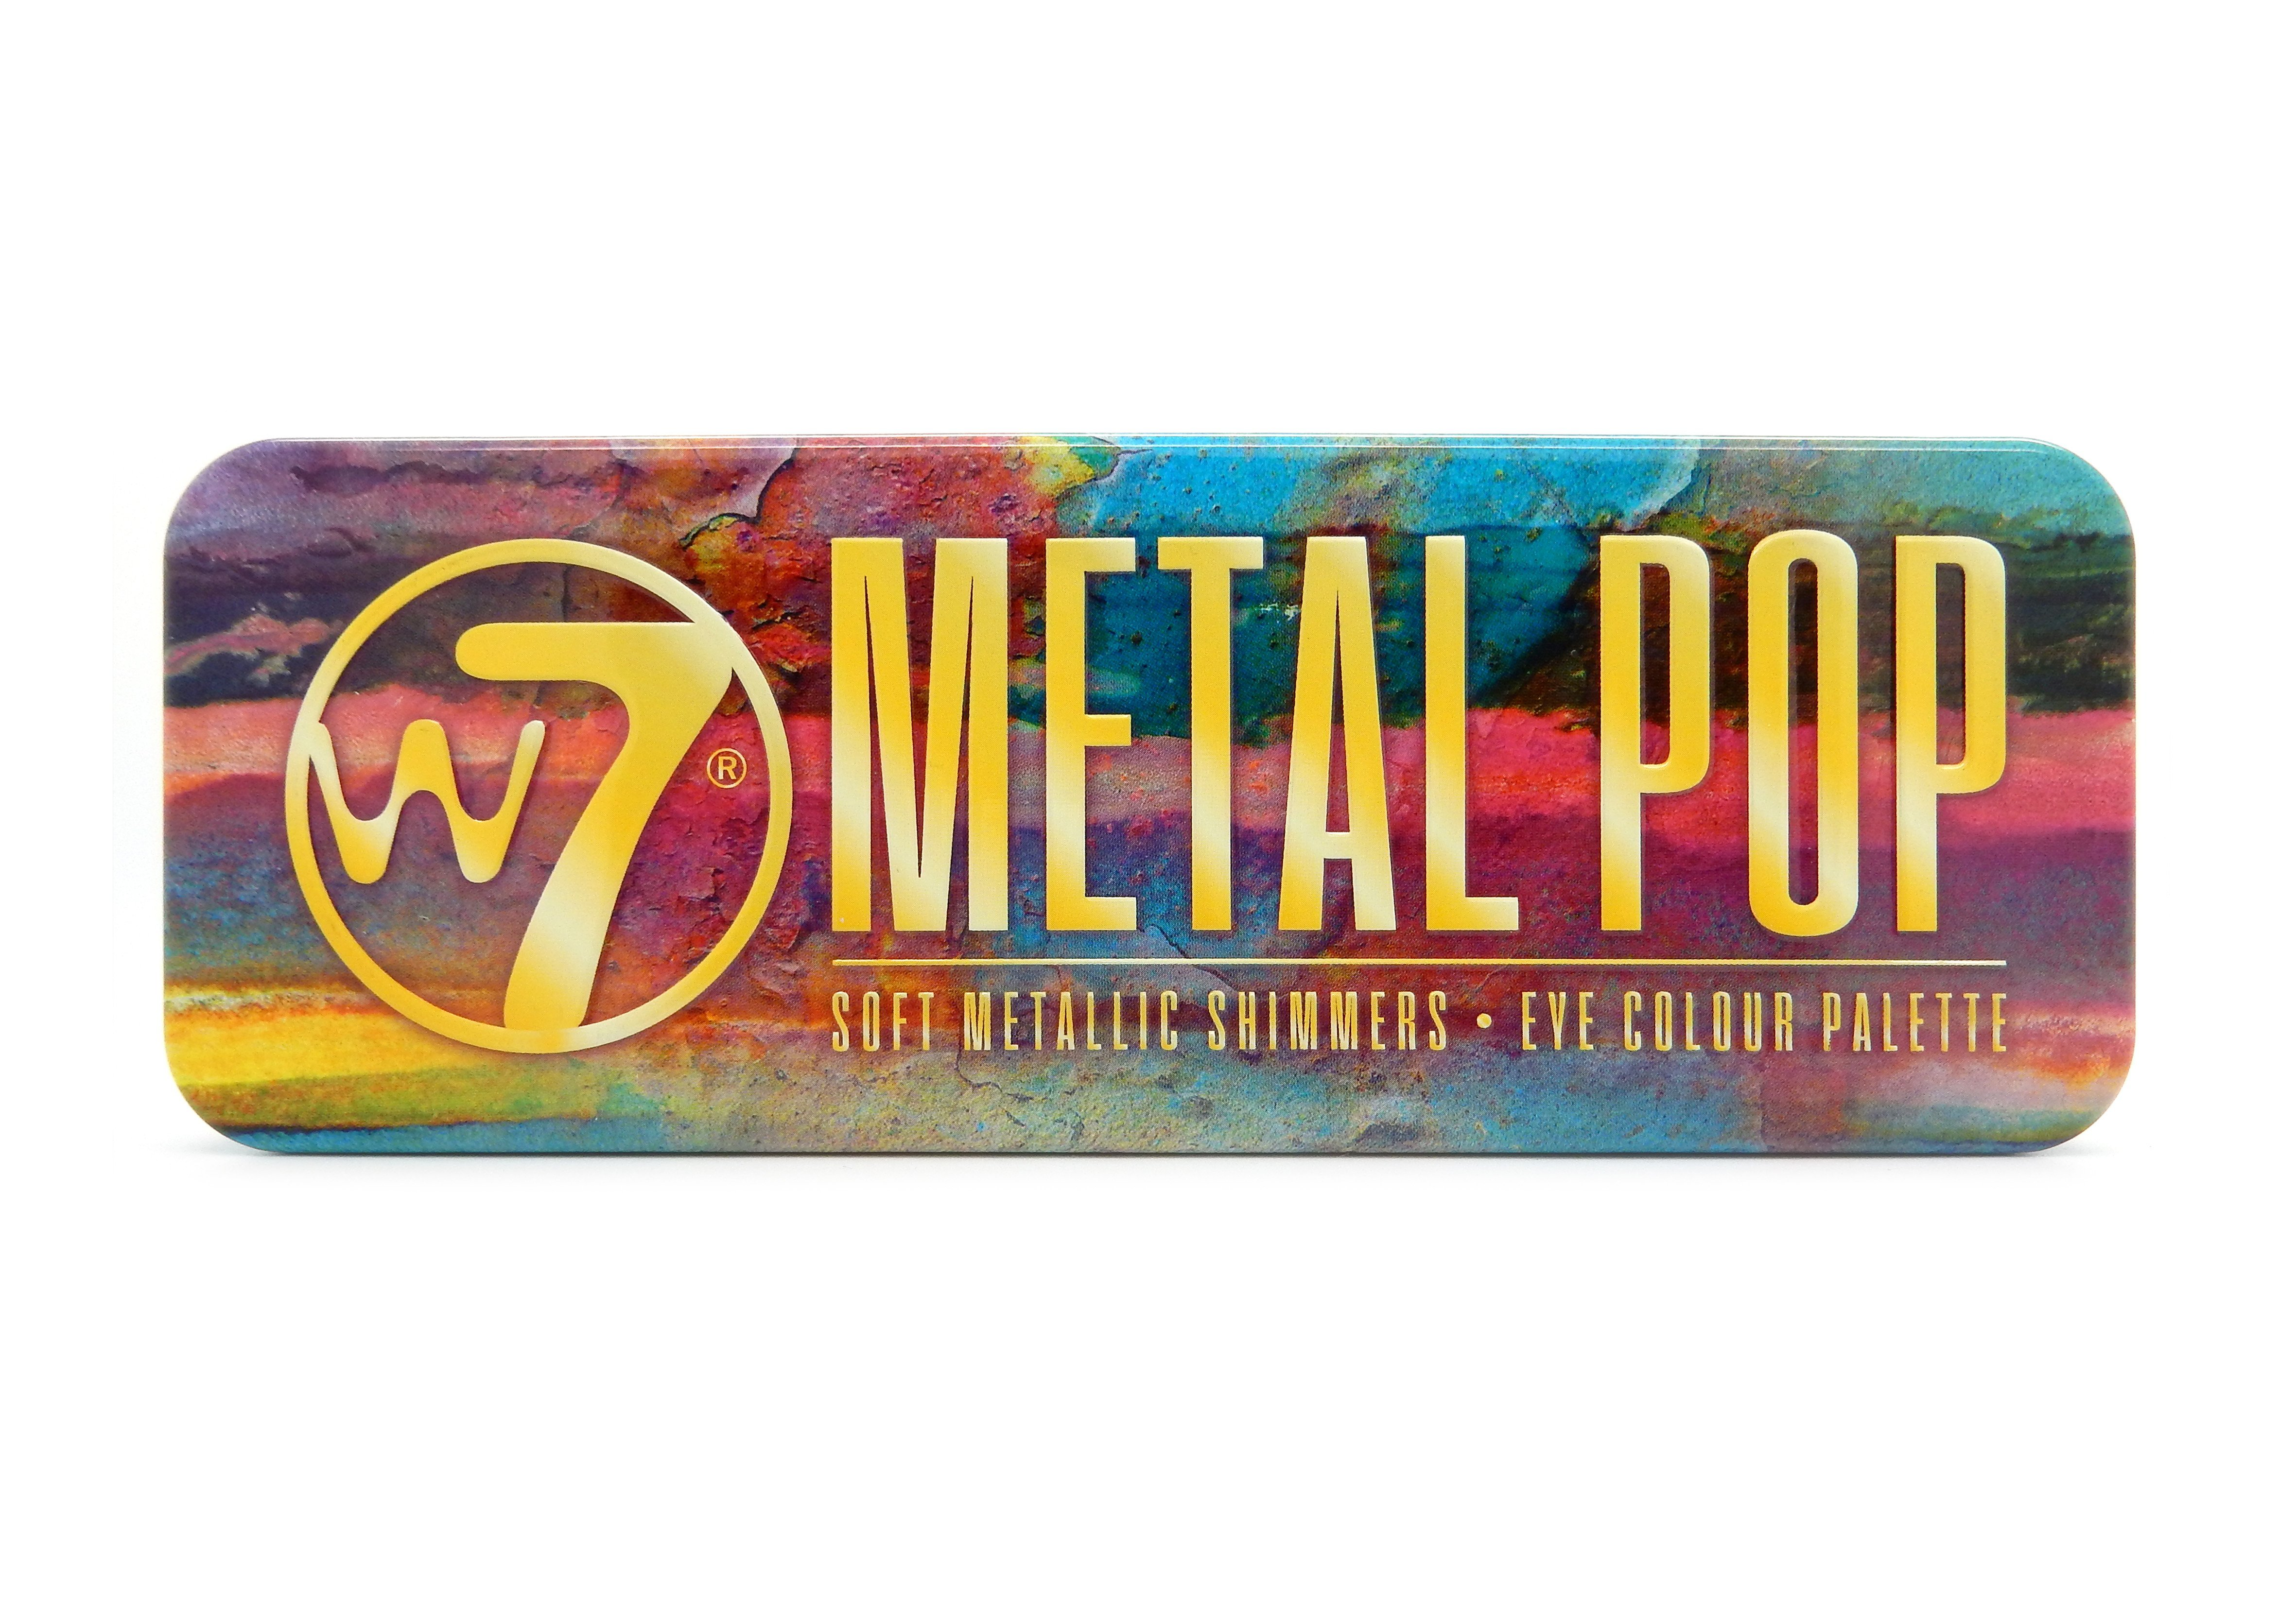 W7 Metal Pop Eyeshadow